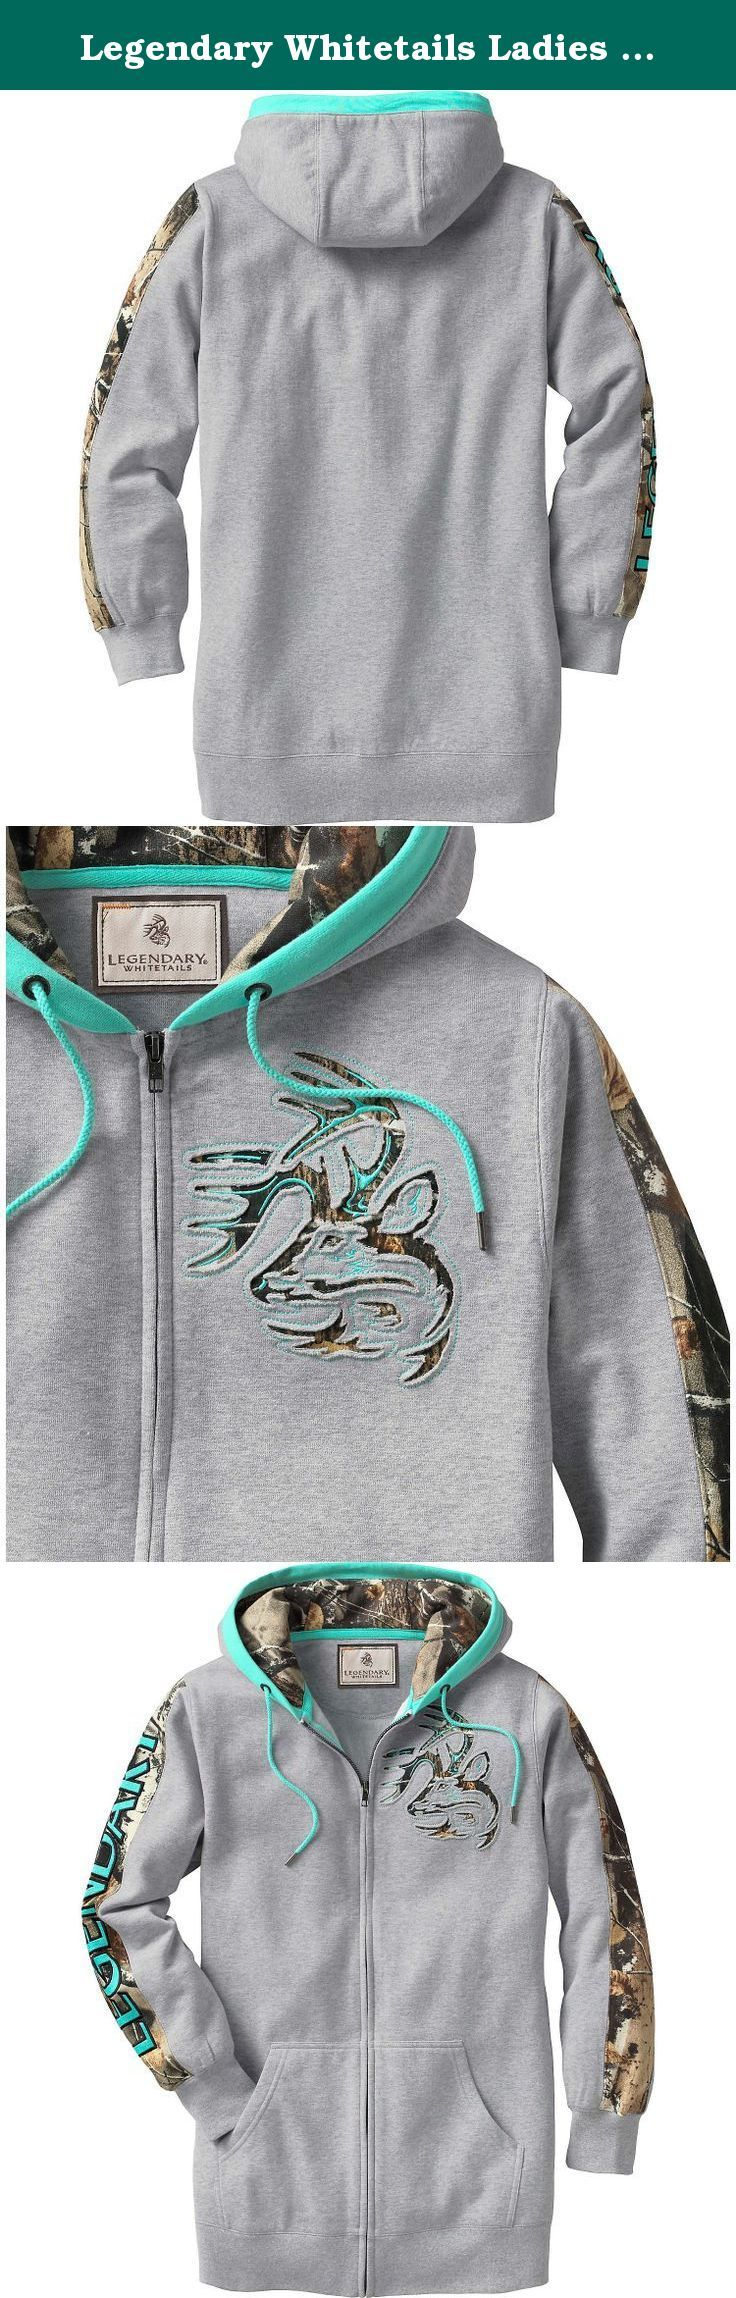 """Legendary Whitetails Ladies Full Zip Tunic Outfitter Hoodie Athletic Heather Medium. A tunic/hoodie combo for the girl with true camo roots! Made from a soft cotton/poly blend, this versatile zip-up hoodie is 3"""" longer than our regular hoodie and features Big Game® Camo sleeve accents, hood lining, and authentic Legendary® Signature Buck appliqué. A fashionable hooded tunic made just for the ladies that love their camo! Material: 70% Cotton and 30% Polyester Wash: Machine wash cold..."""